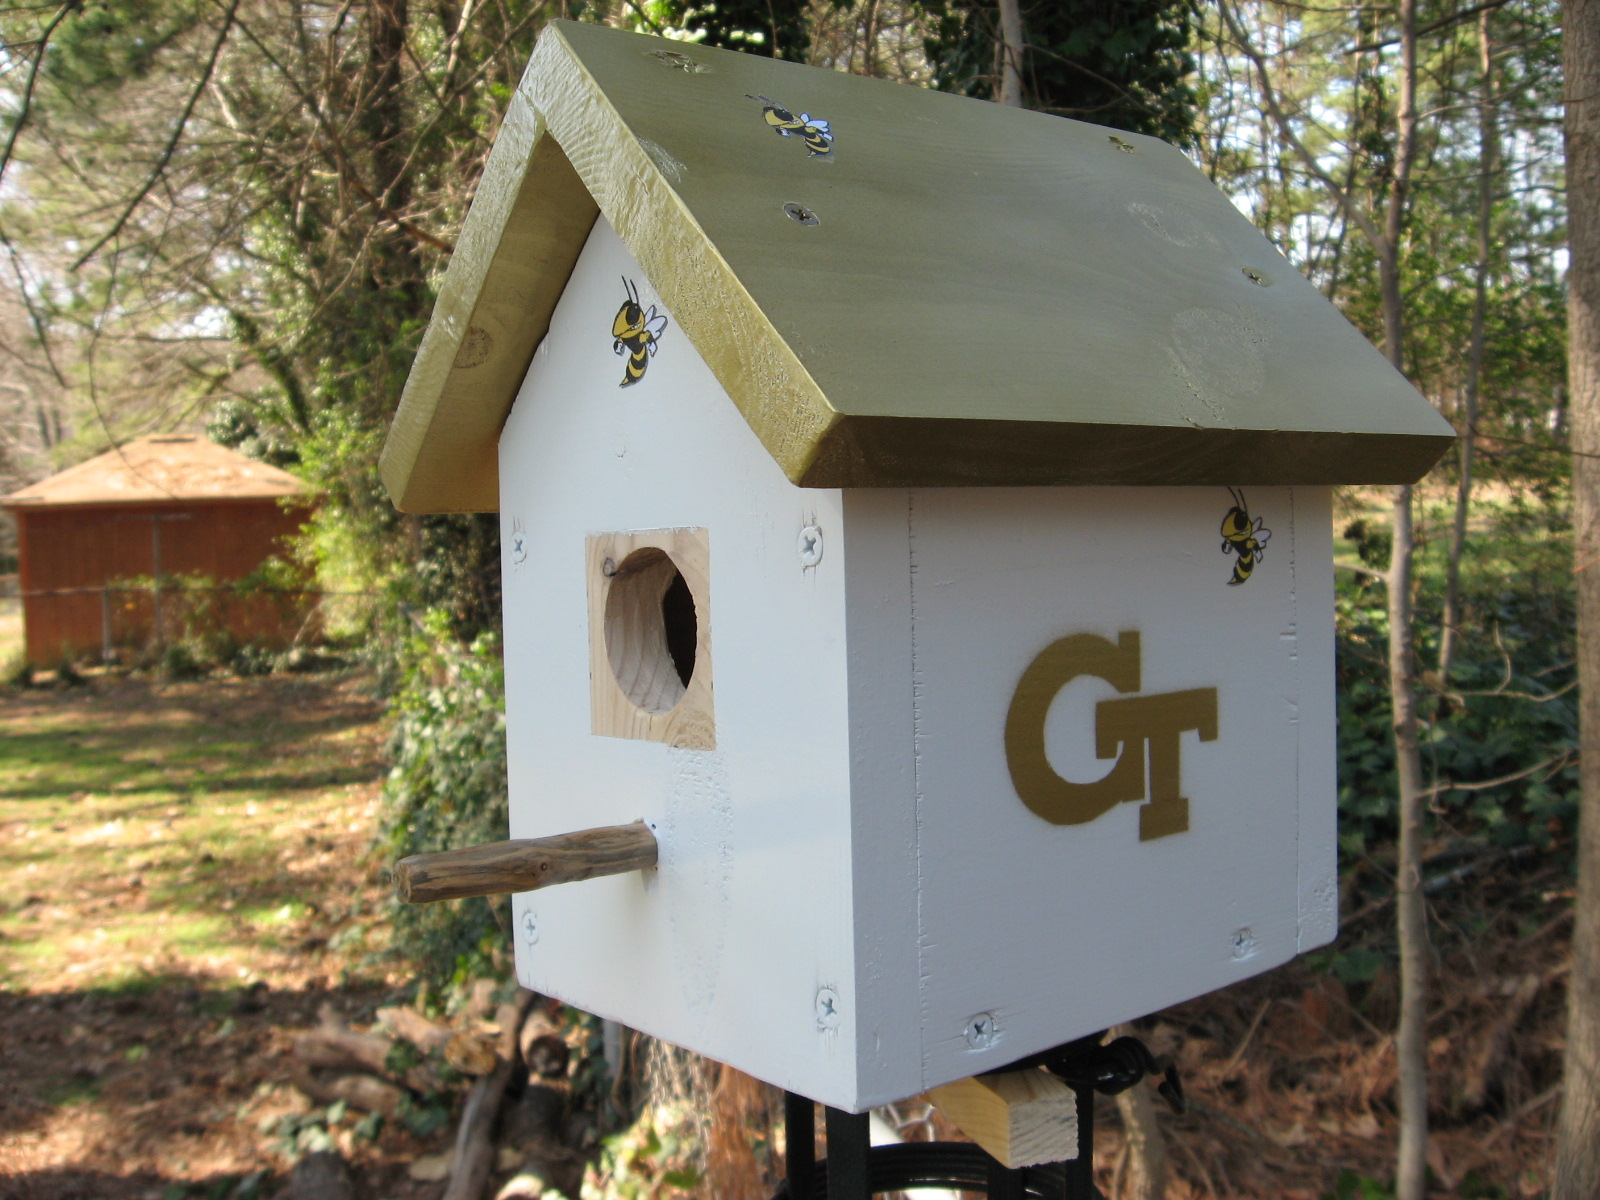 Georgia Tech Birdhouse 3-7-2007 003.jpg